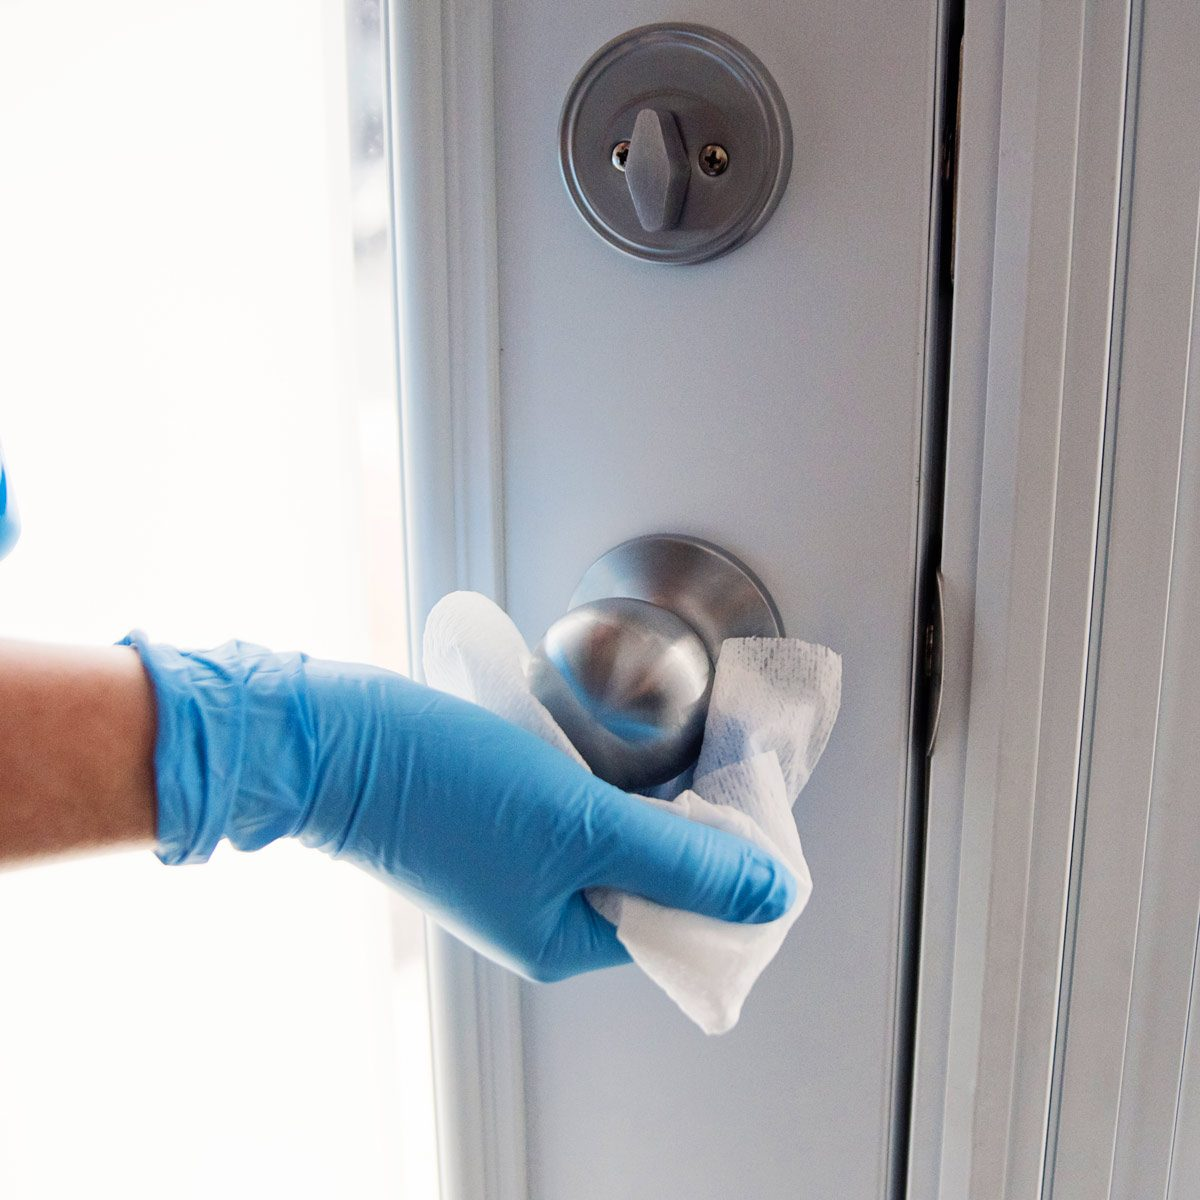 Hands with glove wiping doorknob antibacterial wipe